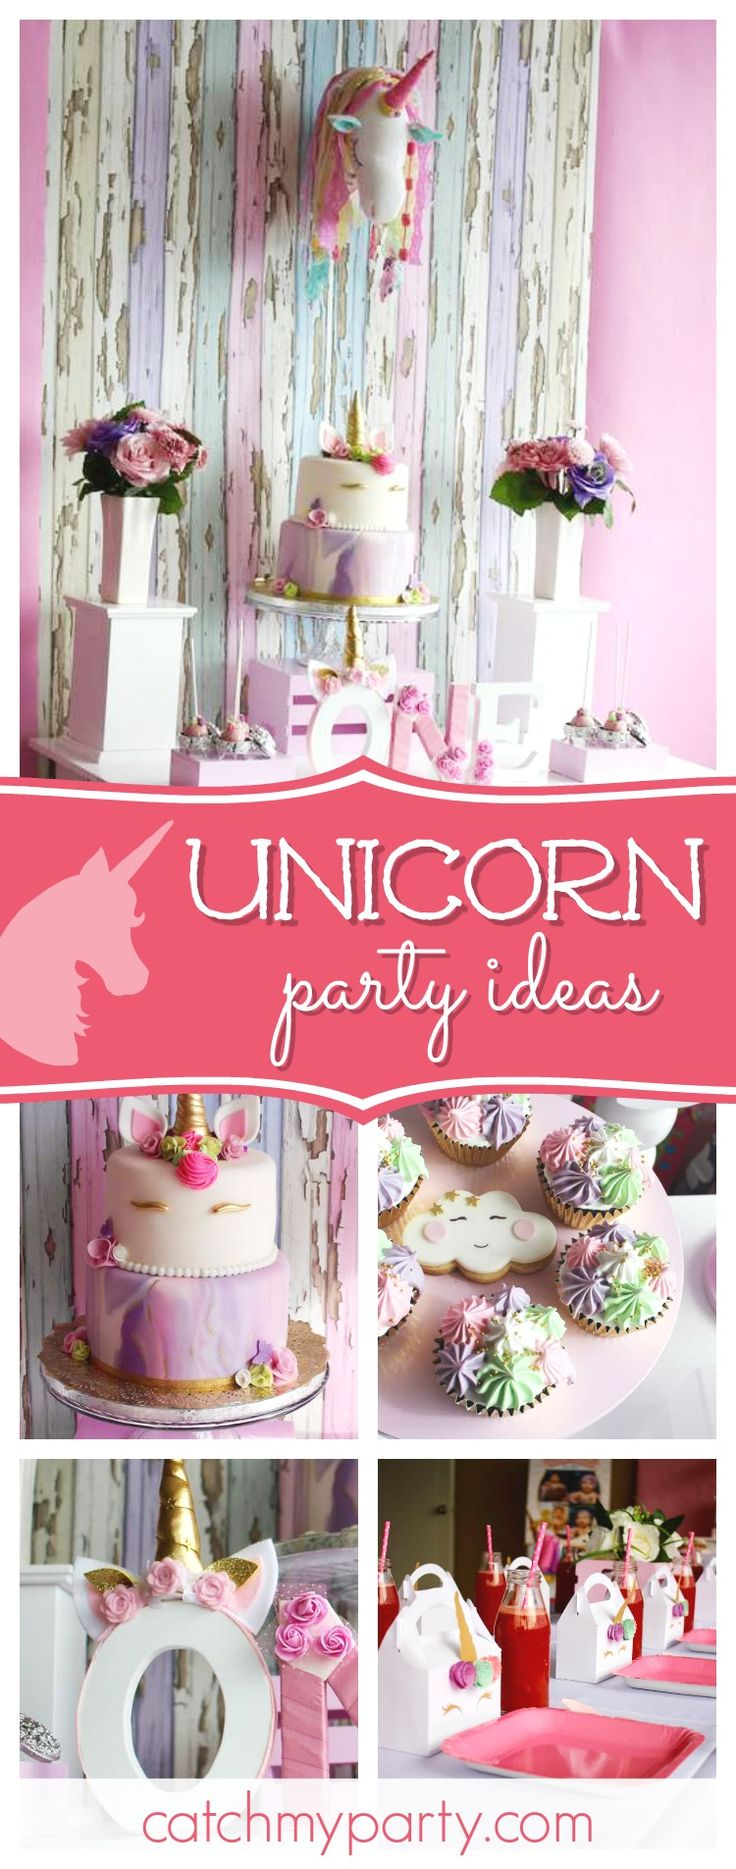 Take a look at this magical Unicorn birthday party! The ombre unicorn birthday cake is gorgeous!! See more party ideas and share yours at CatchMyParty.com  #party #unicorn